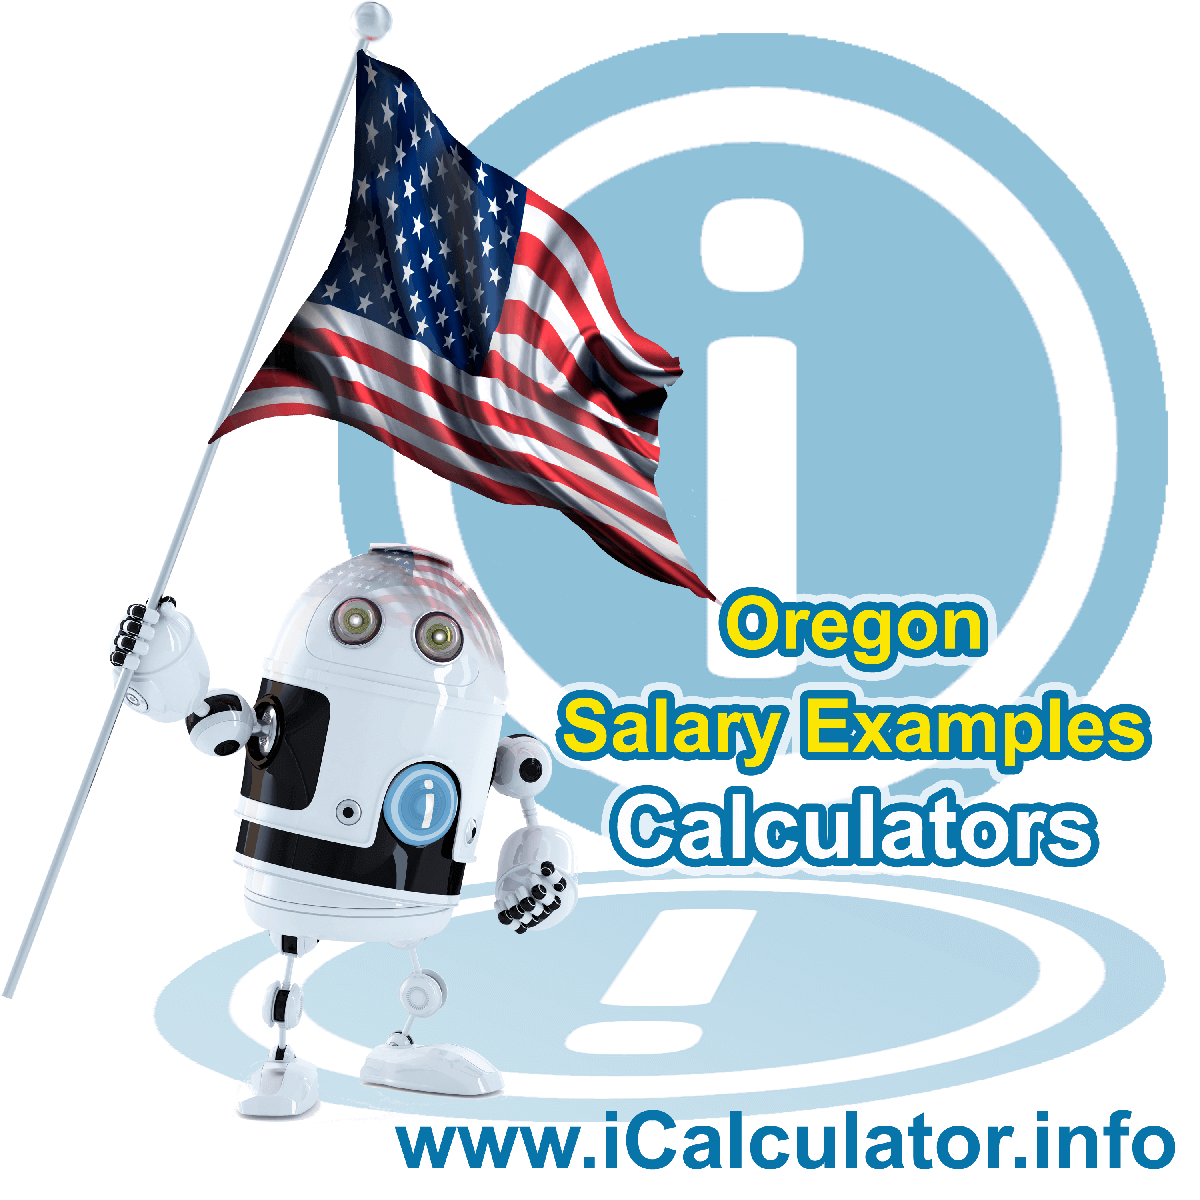 Oregon Salary Example for $15,000.00 in 2020 | iCalculator | $15,000.00 salary example for employee and employer paying Oregon State tincome taxes. Detailed salary after tax calculation including Oregon State Tax, Federal State Tax, Medicare Deductions, Social Security, Capital Gains and other income tax and salary deductions complete with supporting Oregon state tax tables